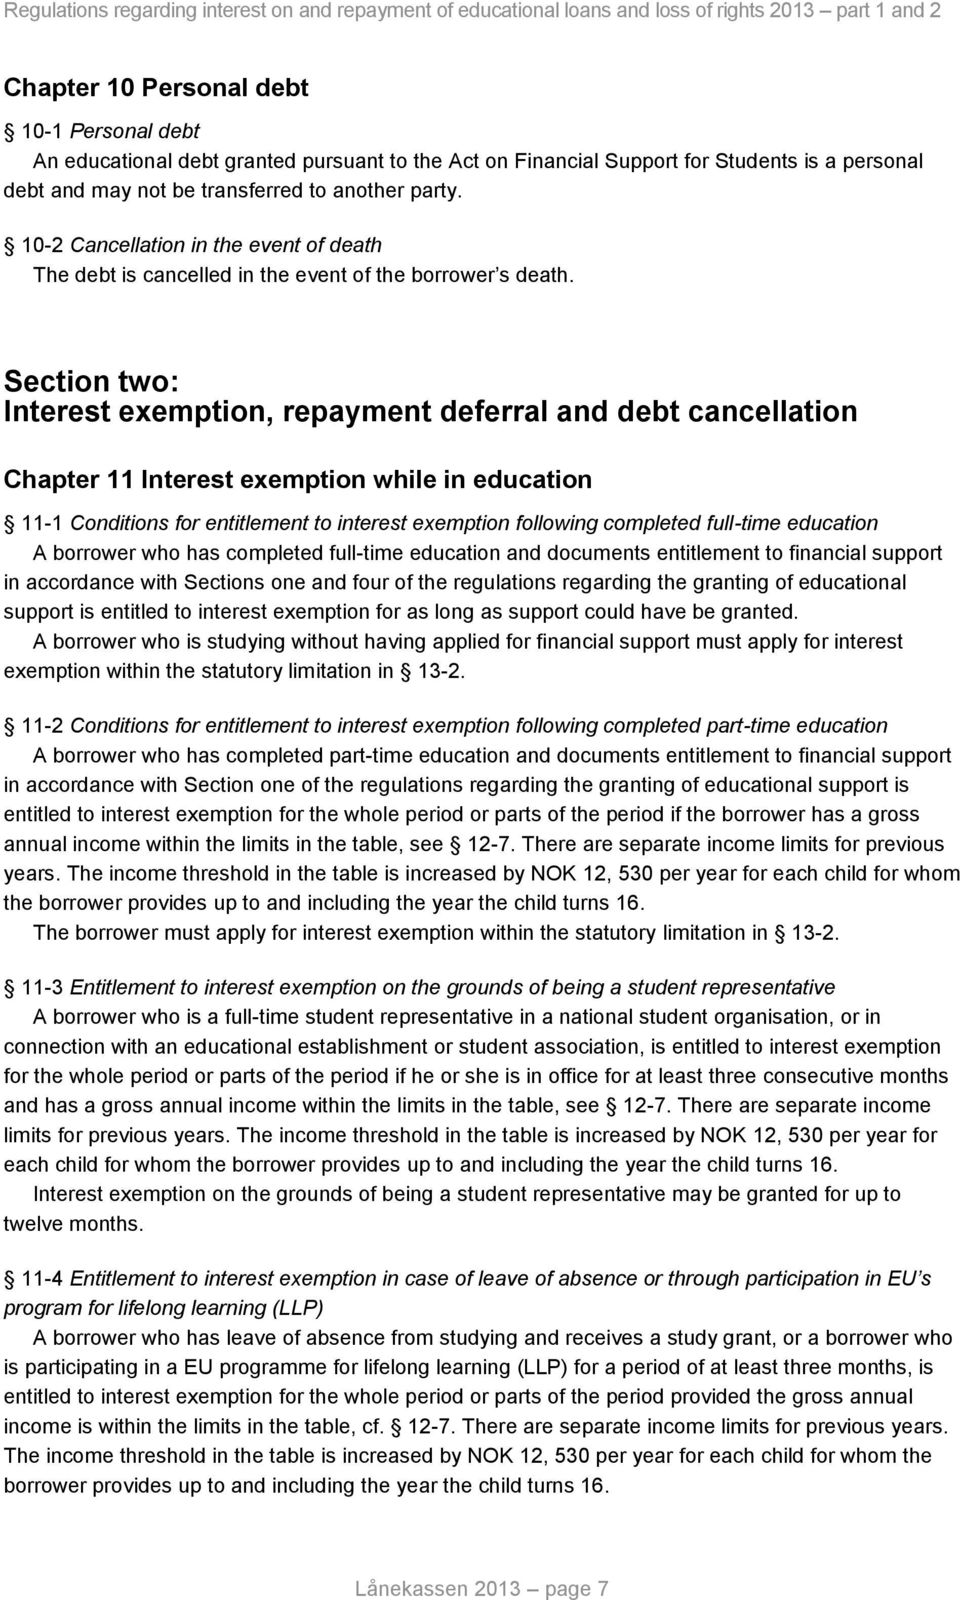 Section two: Interest exemption, repayment deferral and debt cancellation Chapter 11 Interest exemption while in education 11-1 Conditions for entitlement to interest exemption following completed